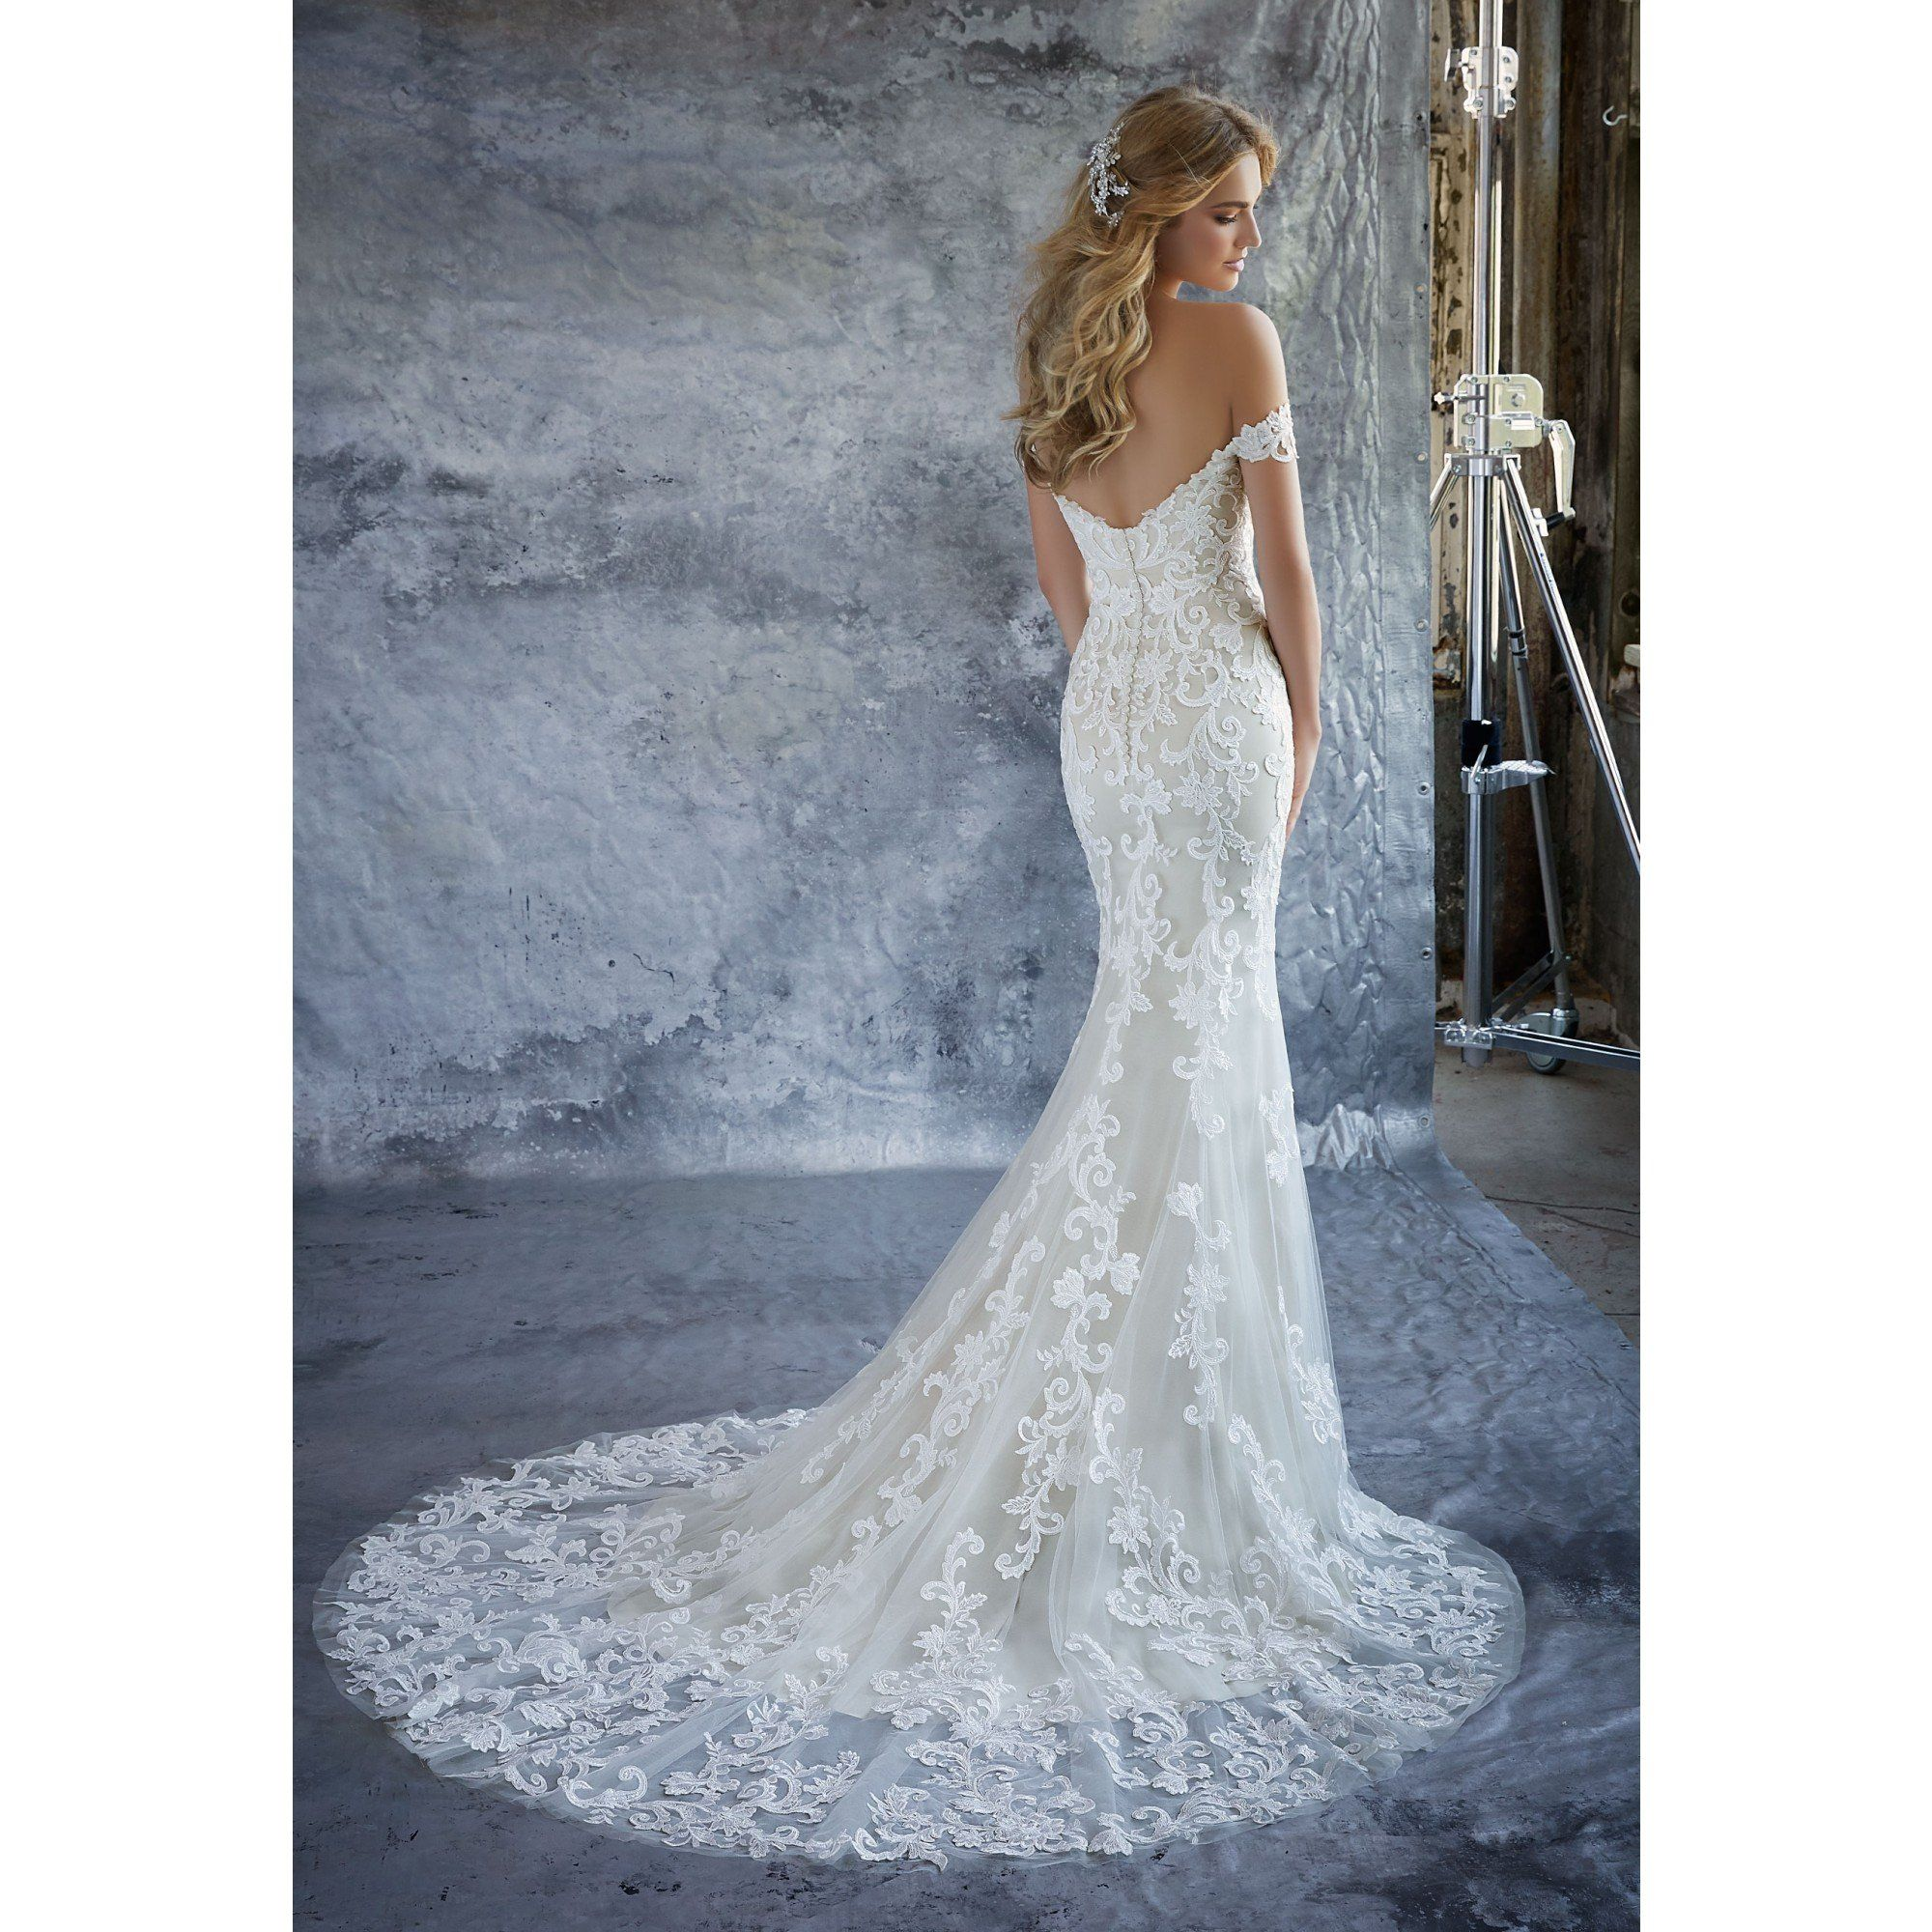 Mori Lee Kassia|Mori Lee 8203|tampabridalshops.com|Ivory & Lace by CCs bridal boutique Tampa